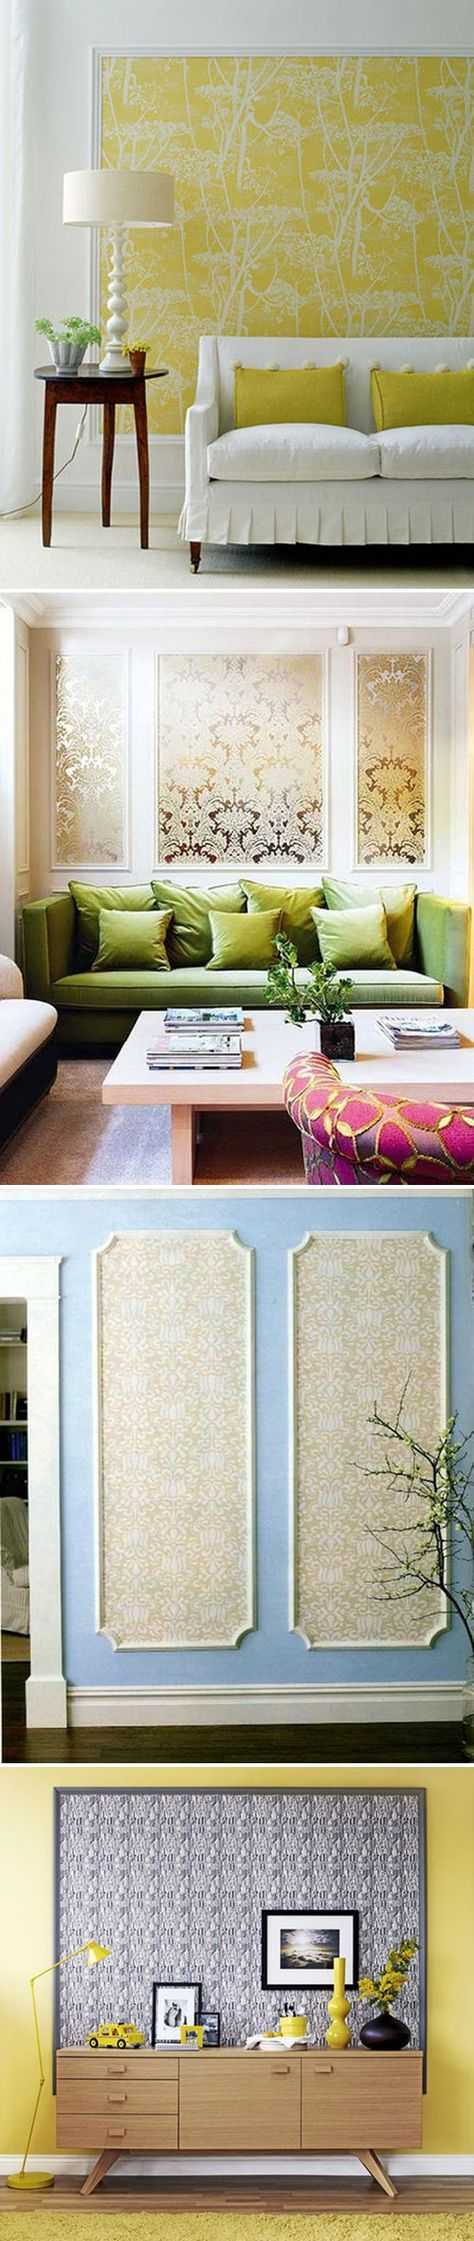 WALL ART :: DIY Wallpaper Panels :: These panels become art w/ a bit of molding framing them. If you can't afford to buy enough of a fabulous designer print to do a whole room, try this!   #apartmenttherapy #wallpaper #wallart